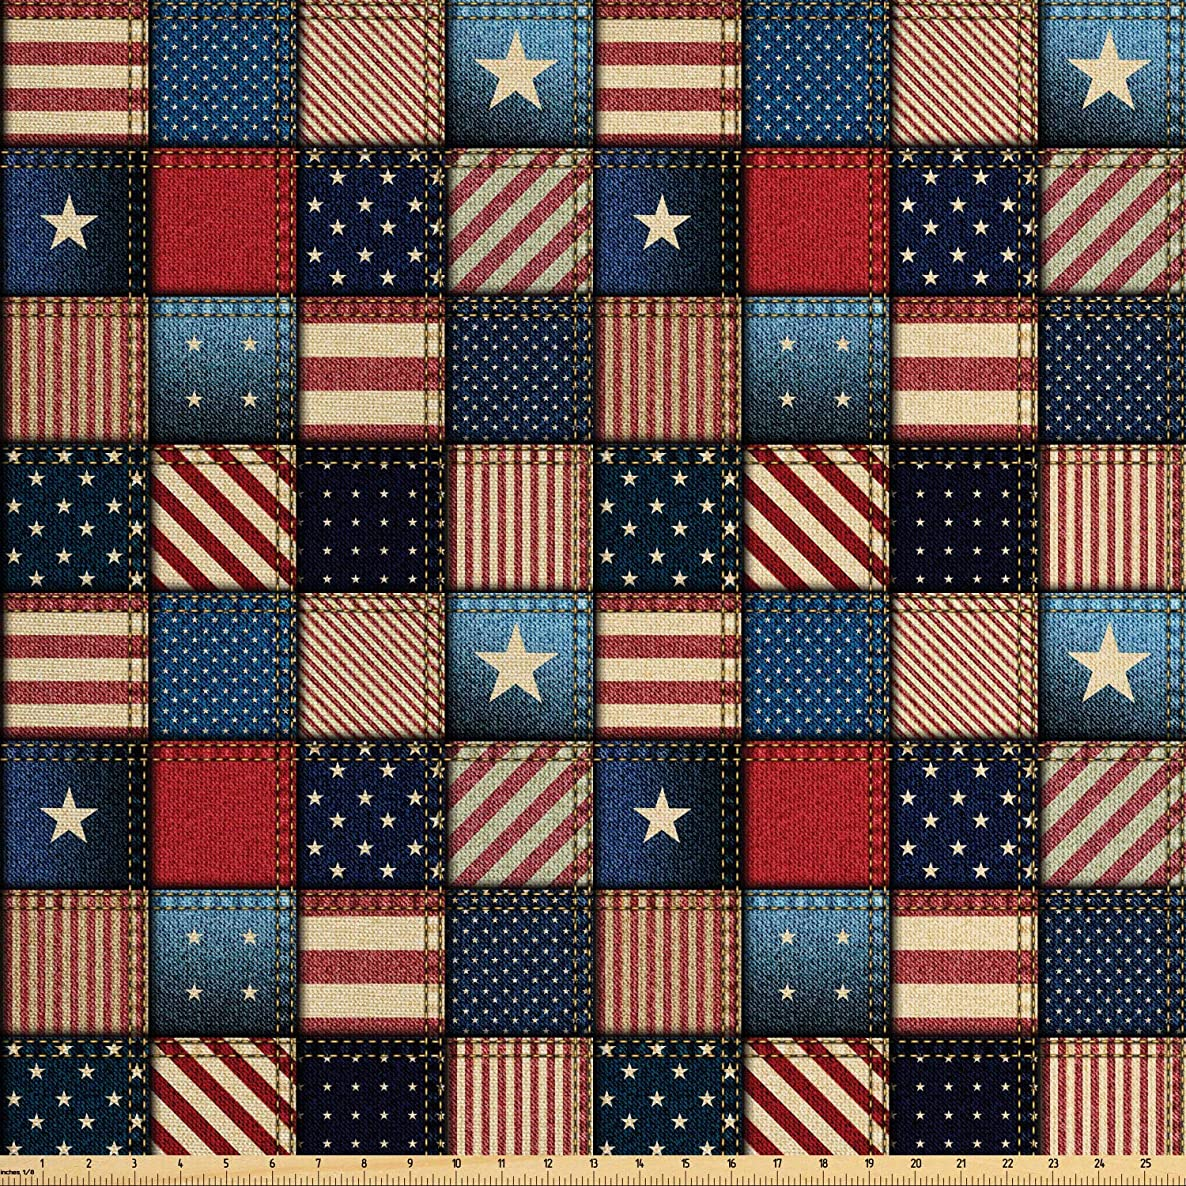 Lunarable United States Fabric by The Yard, American Flag Patchwork with Vertical and Horizontal Stripe and Star Forms, Decorative Fabric for Upholstery and Home Accents, 1 Yard, Red Blue